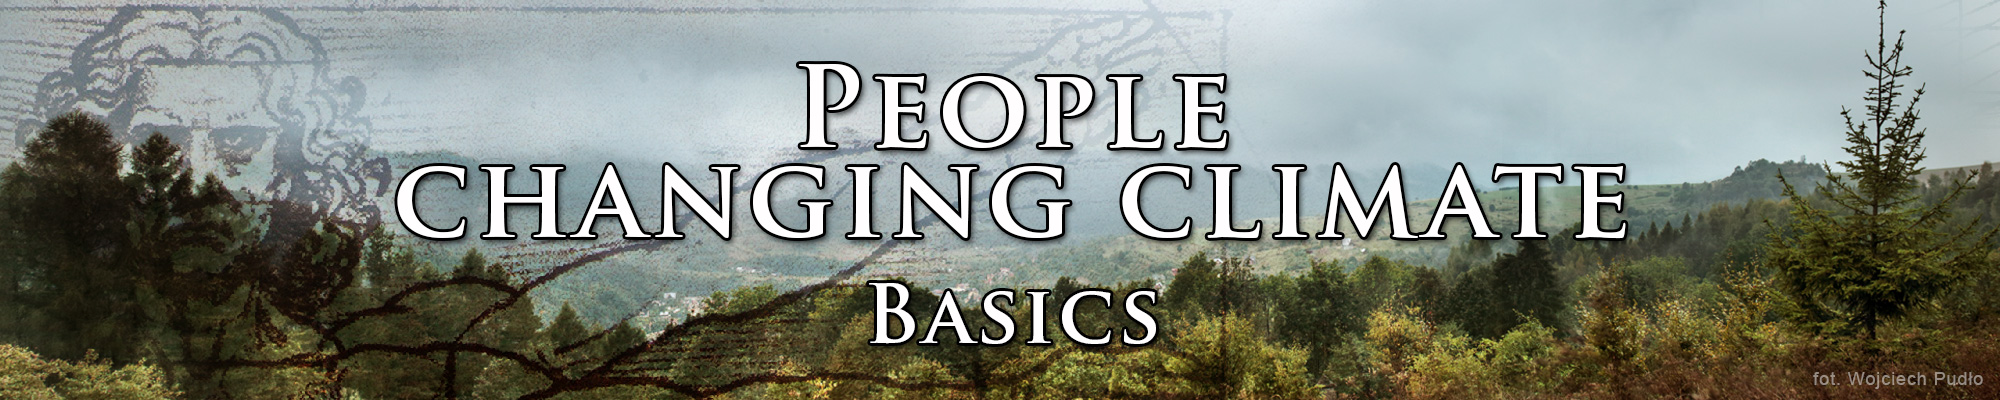 Topic: People changing climate. Basics.